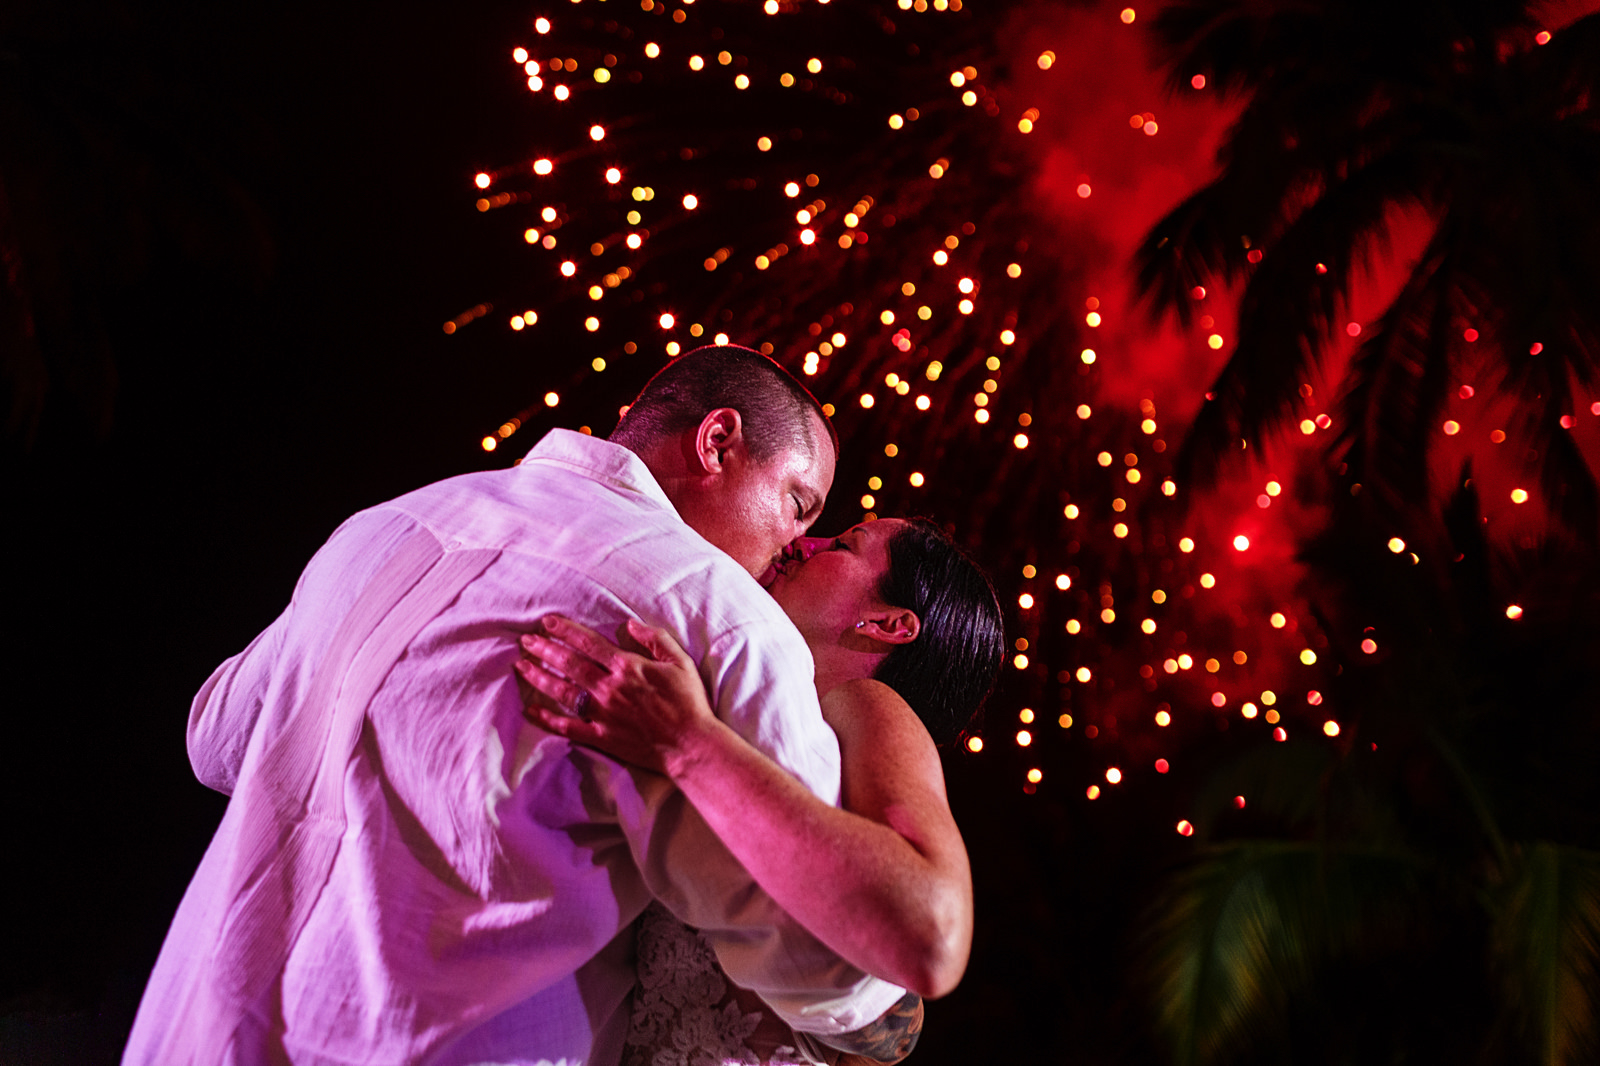 Fireworks in the sky while wedding couple kiss at the end of their first dance as a married couple